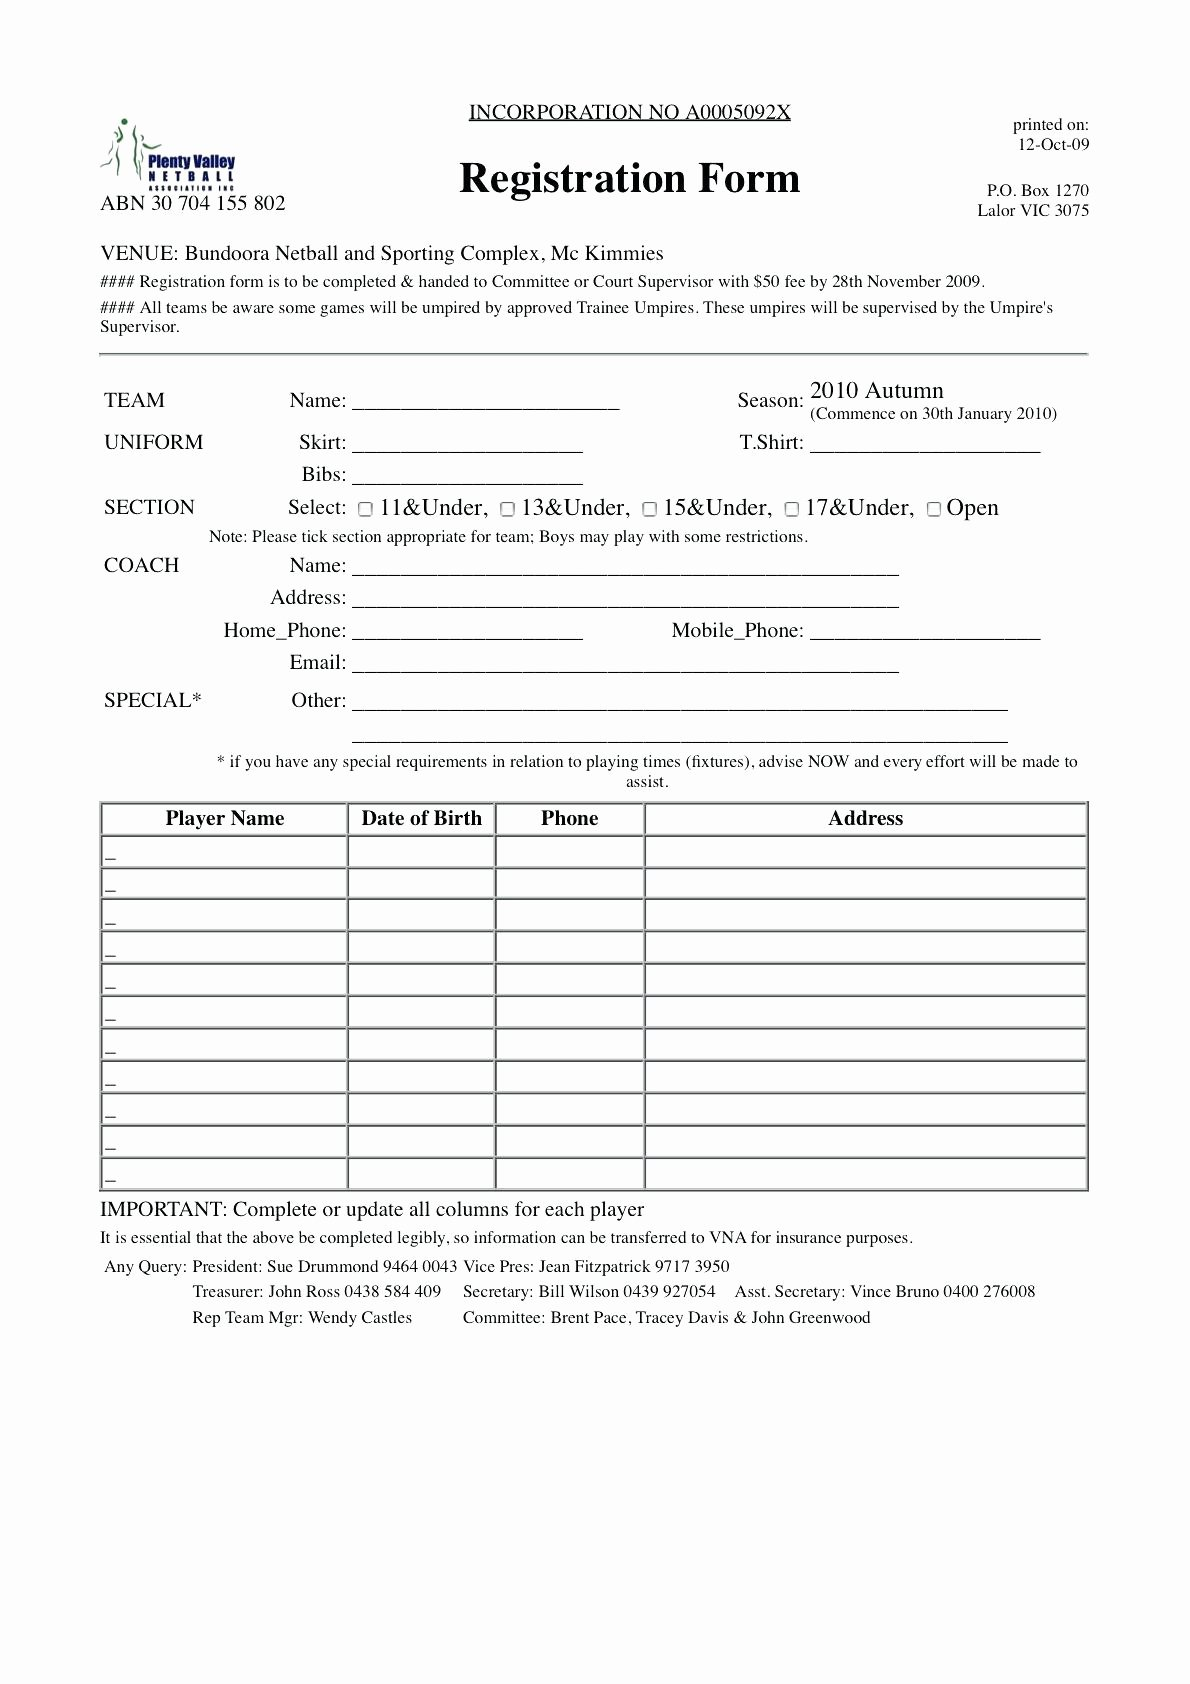 Free Sports Registration form Template Luxury Team Registration form Template